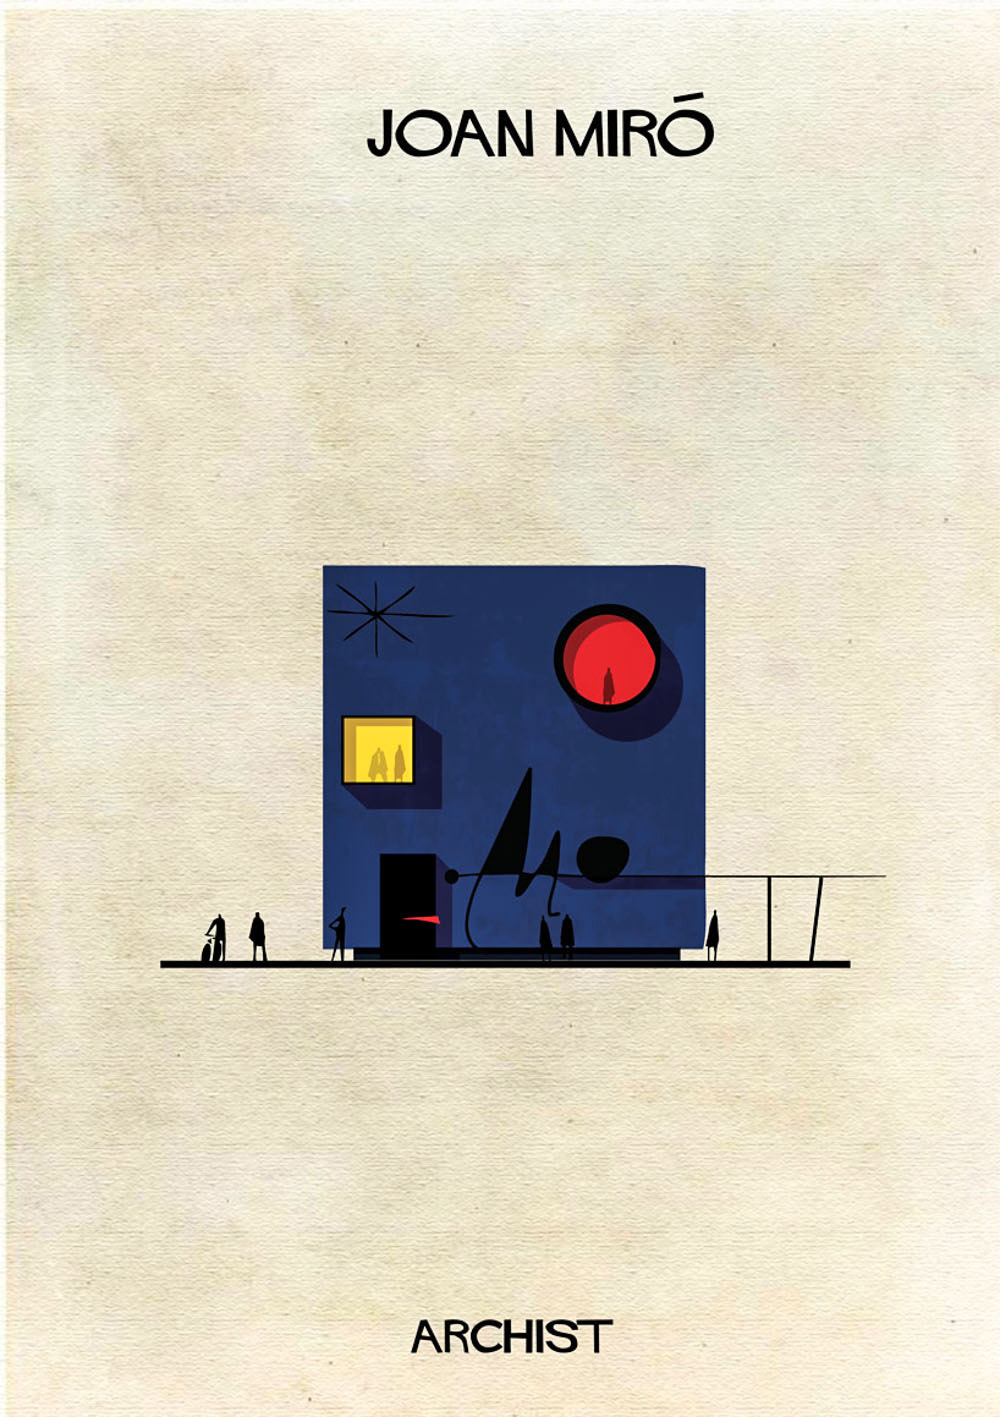 http://obviousmag.org/sphere/archives/uploads/2014/06/miró.jpg